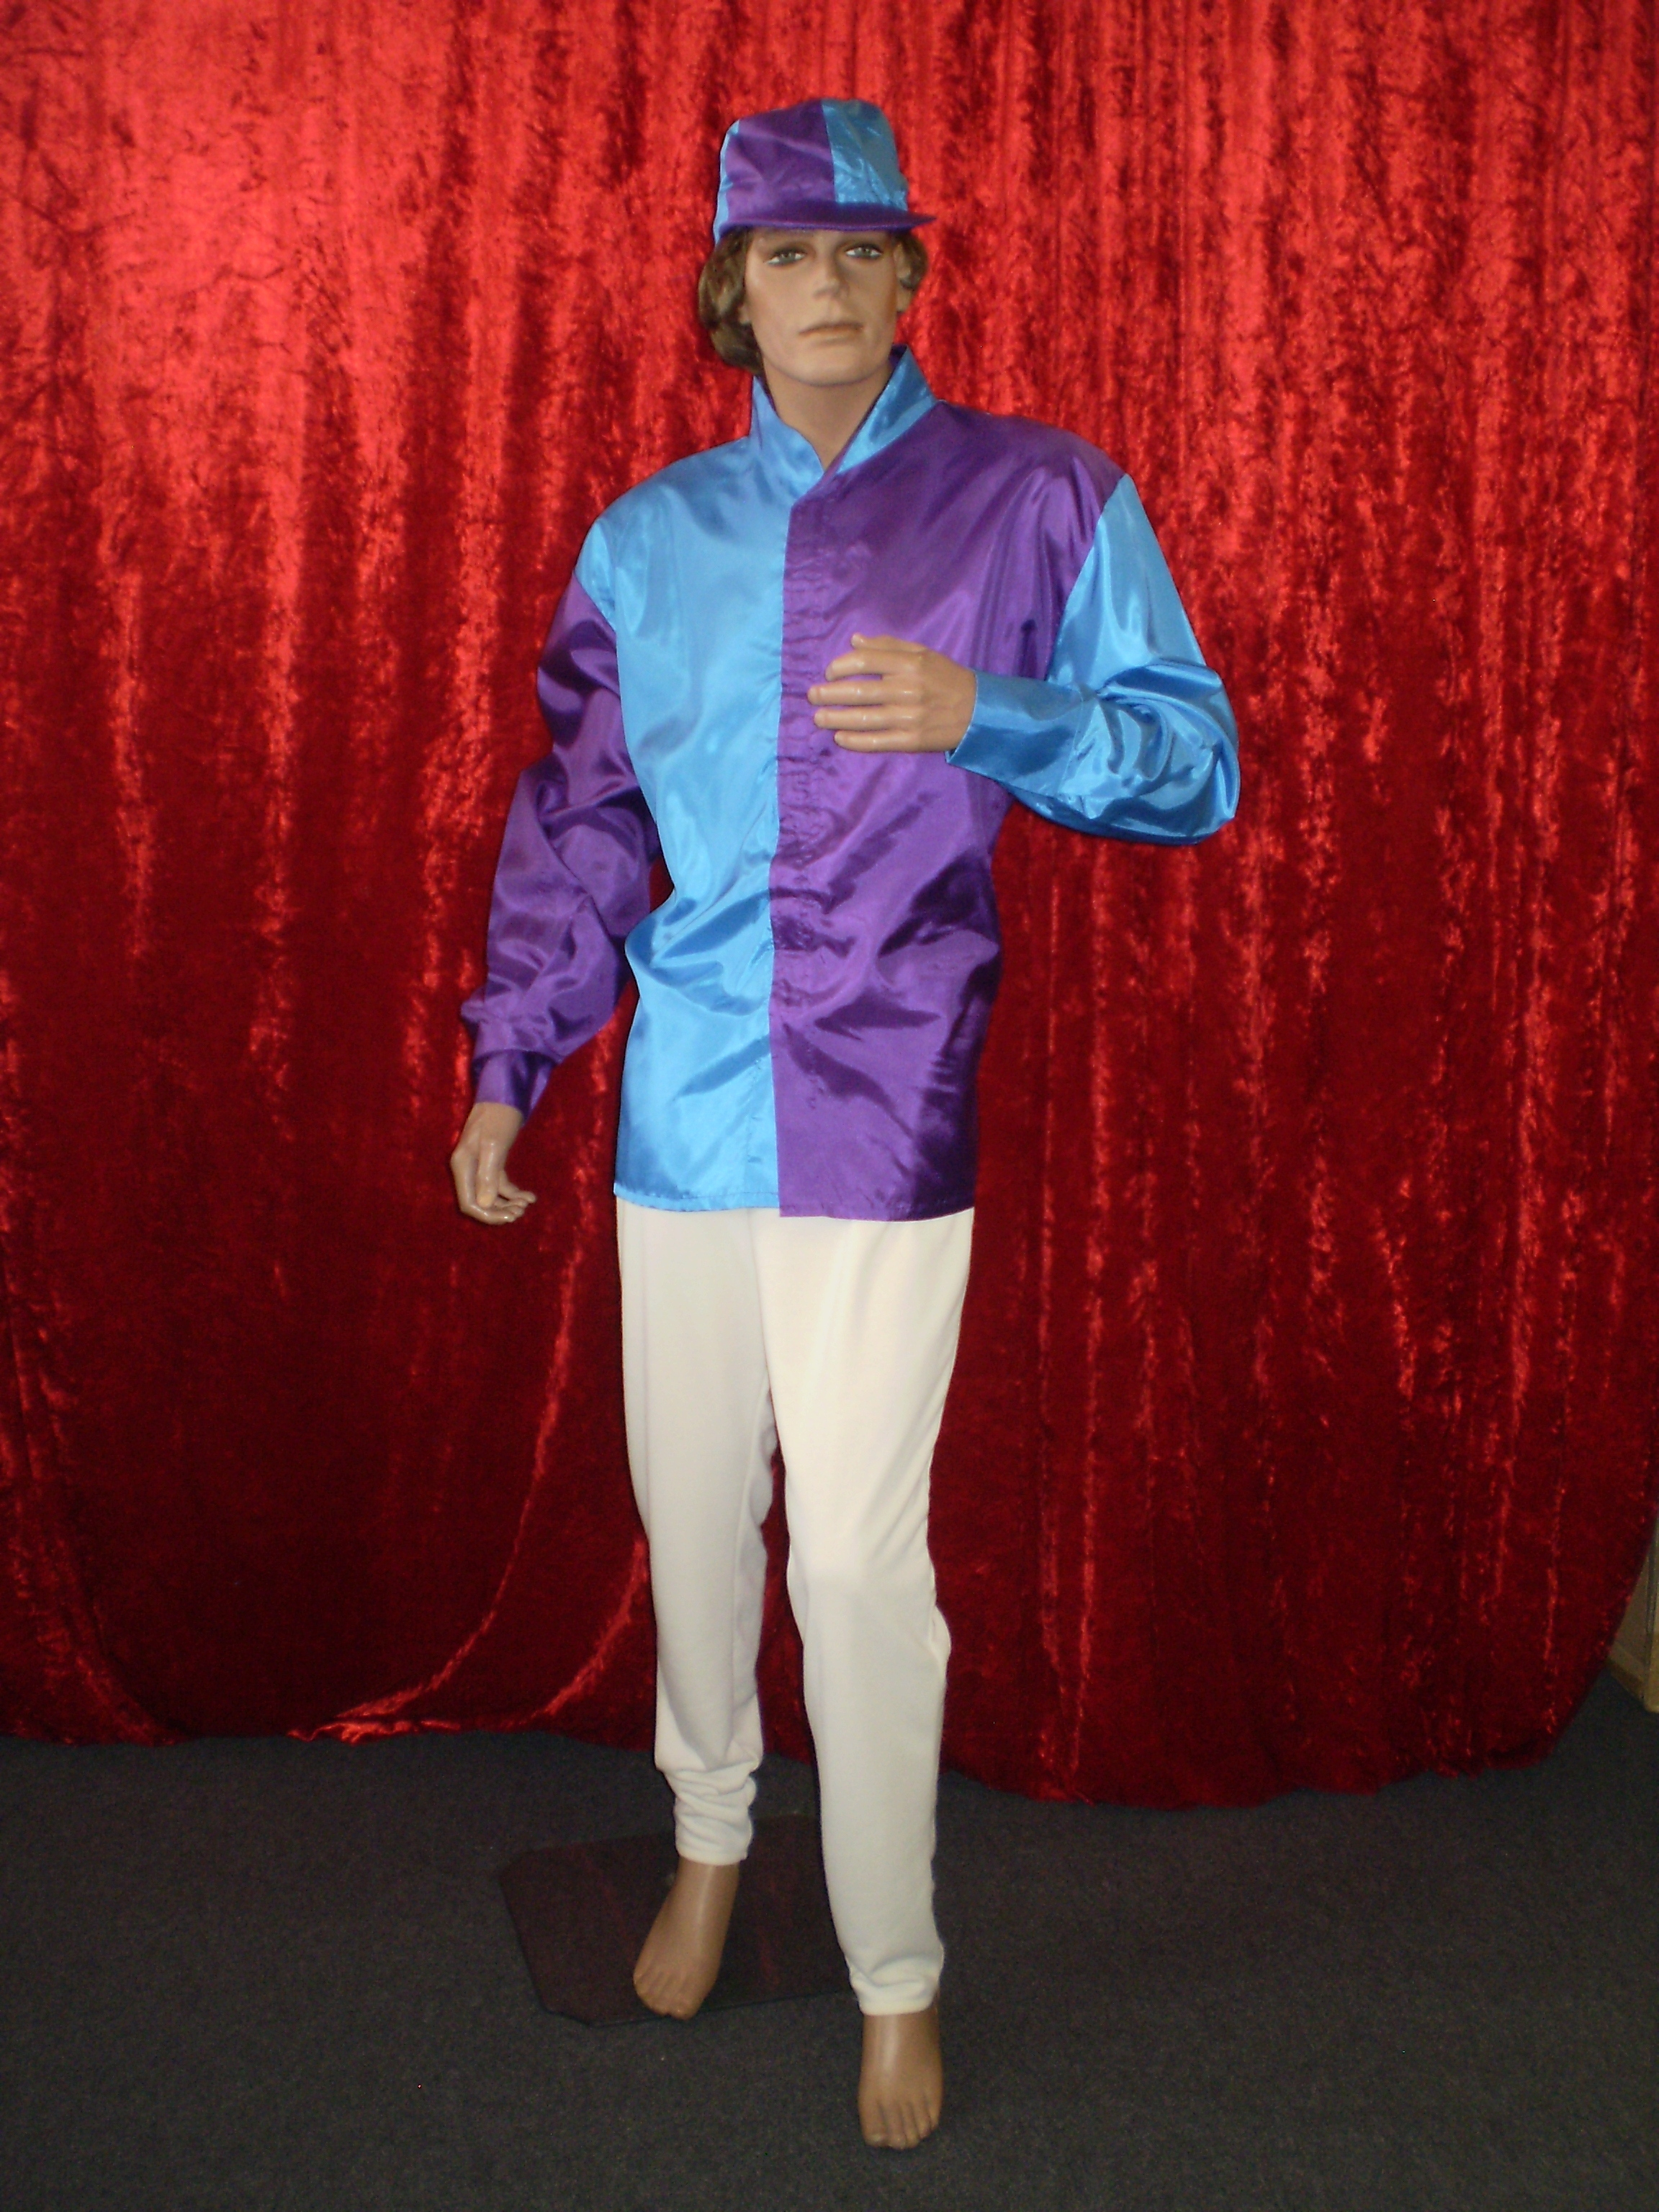 costumes starting with j j theme fancy dress ideas hire